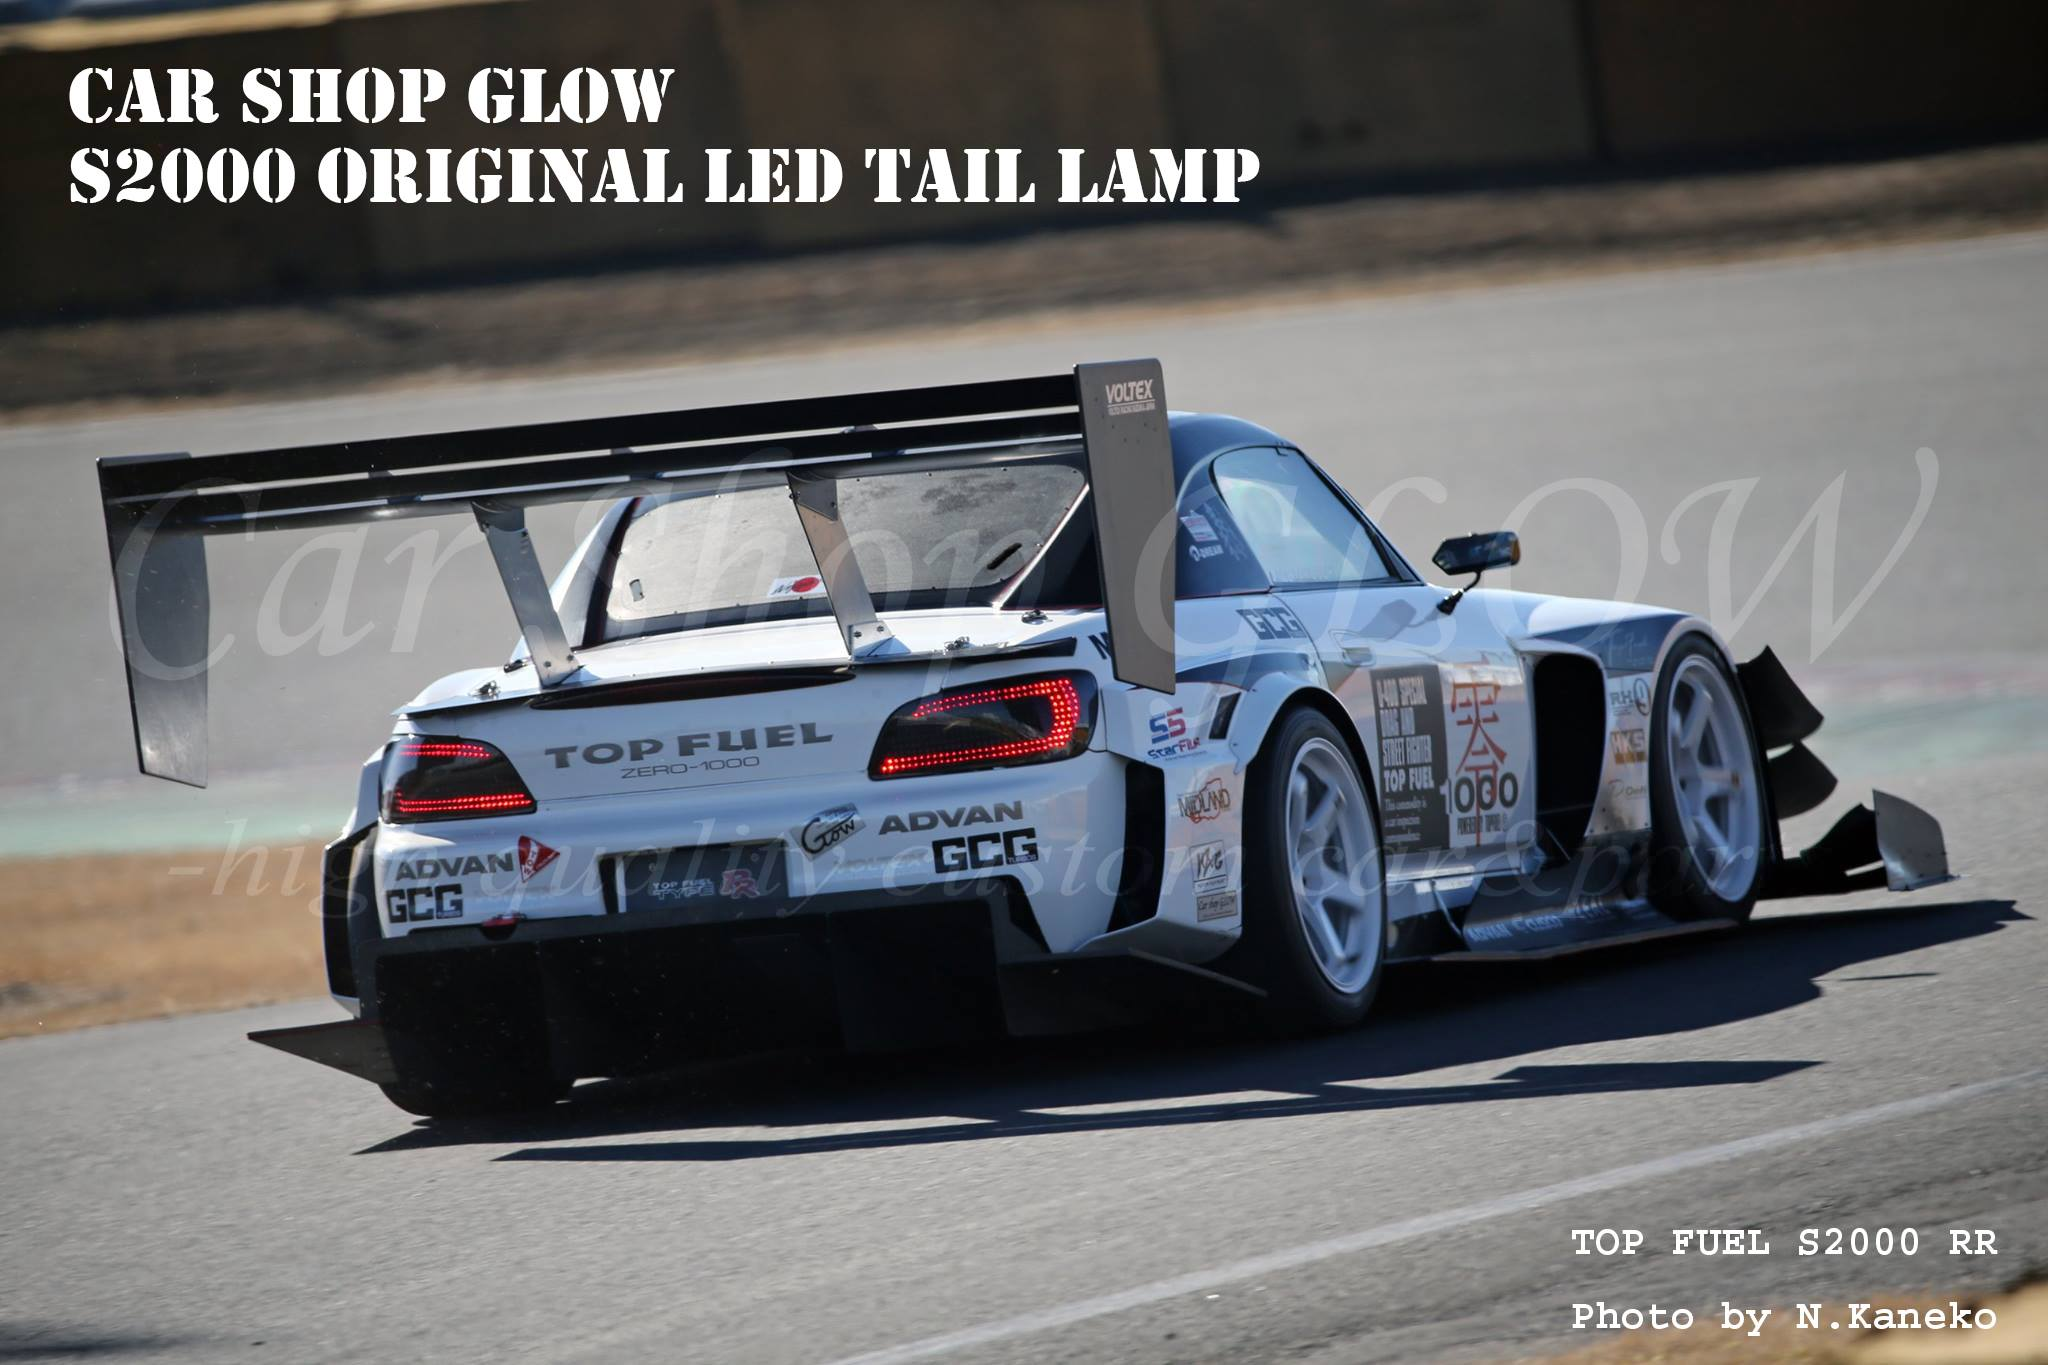 Tuning Parts Search Carshopglow